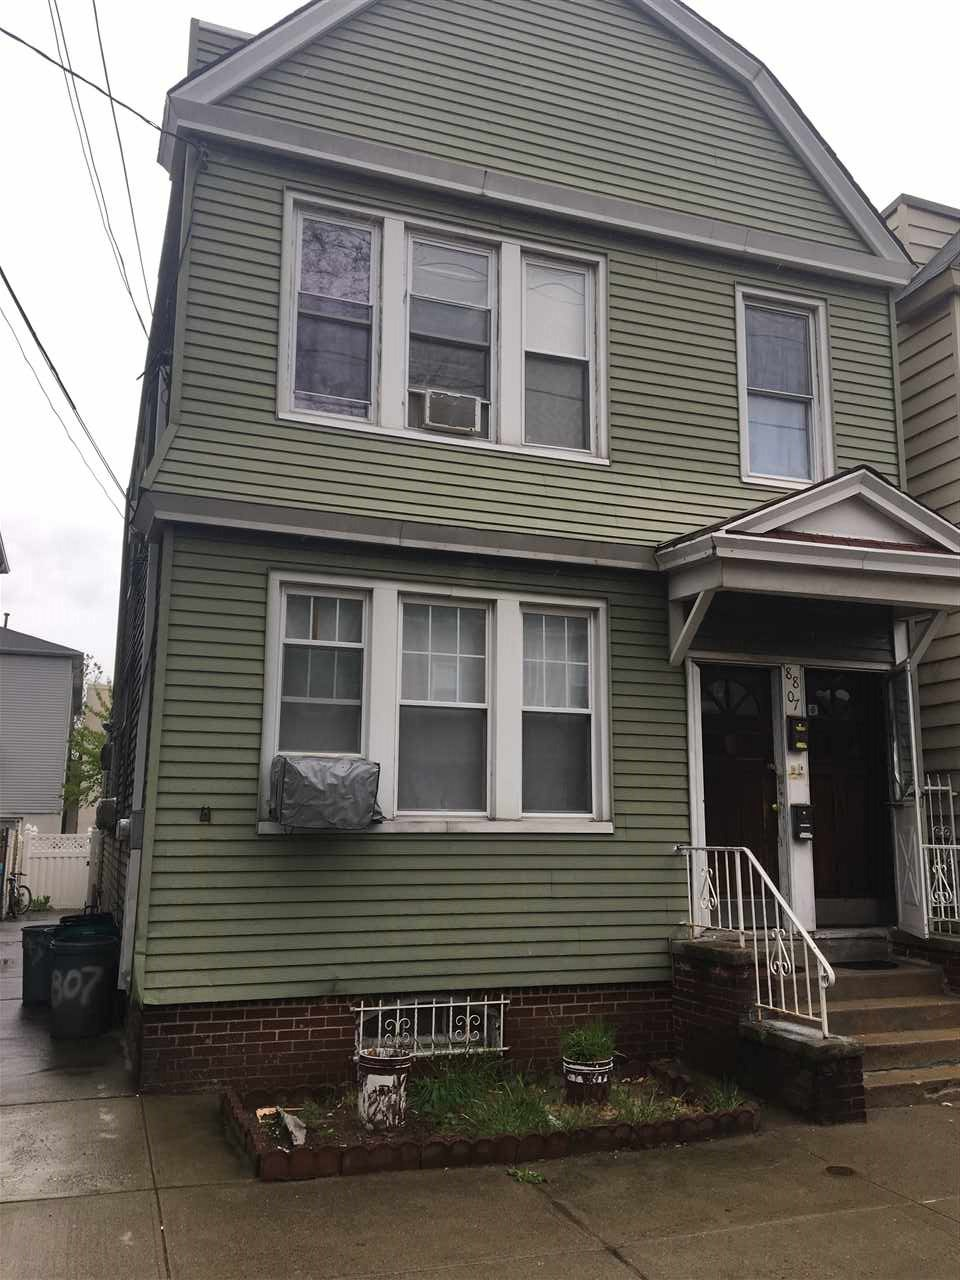 8807 3RD AVE, North Bergen, NJ 07047